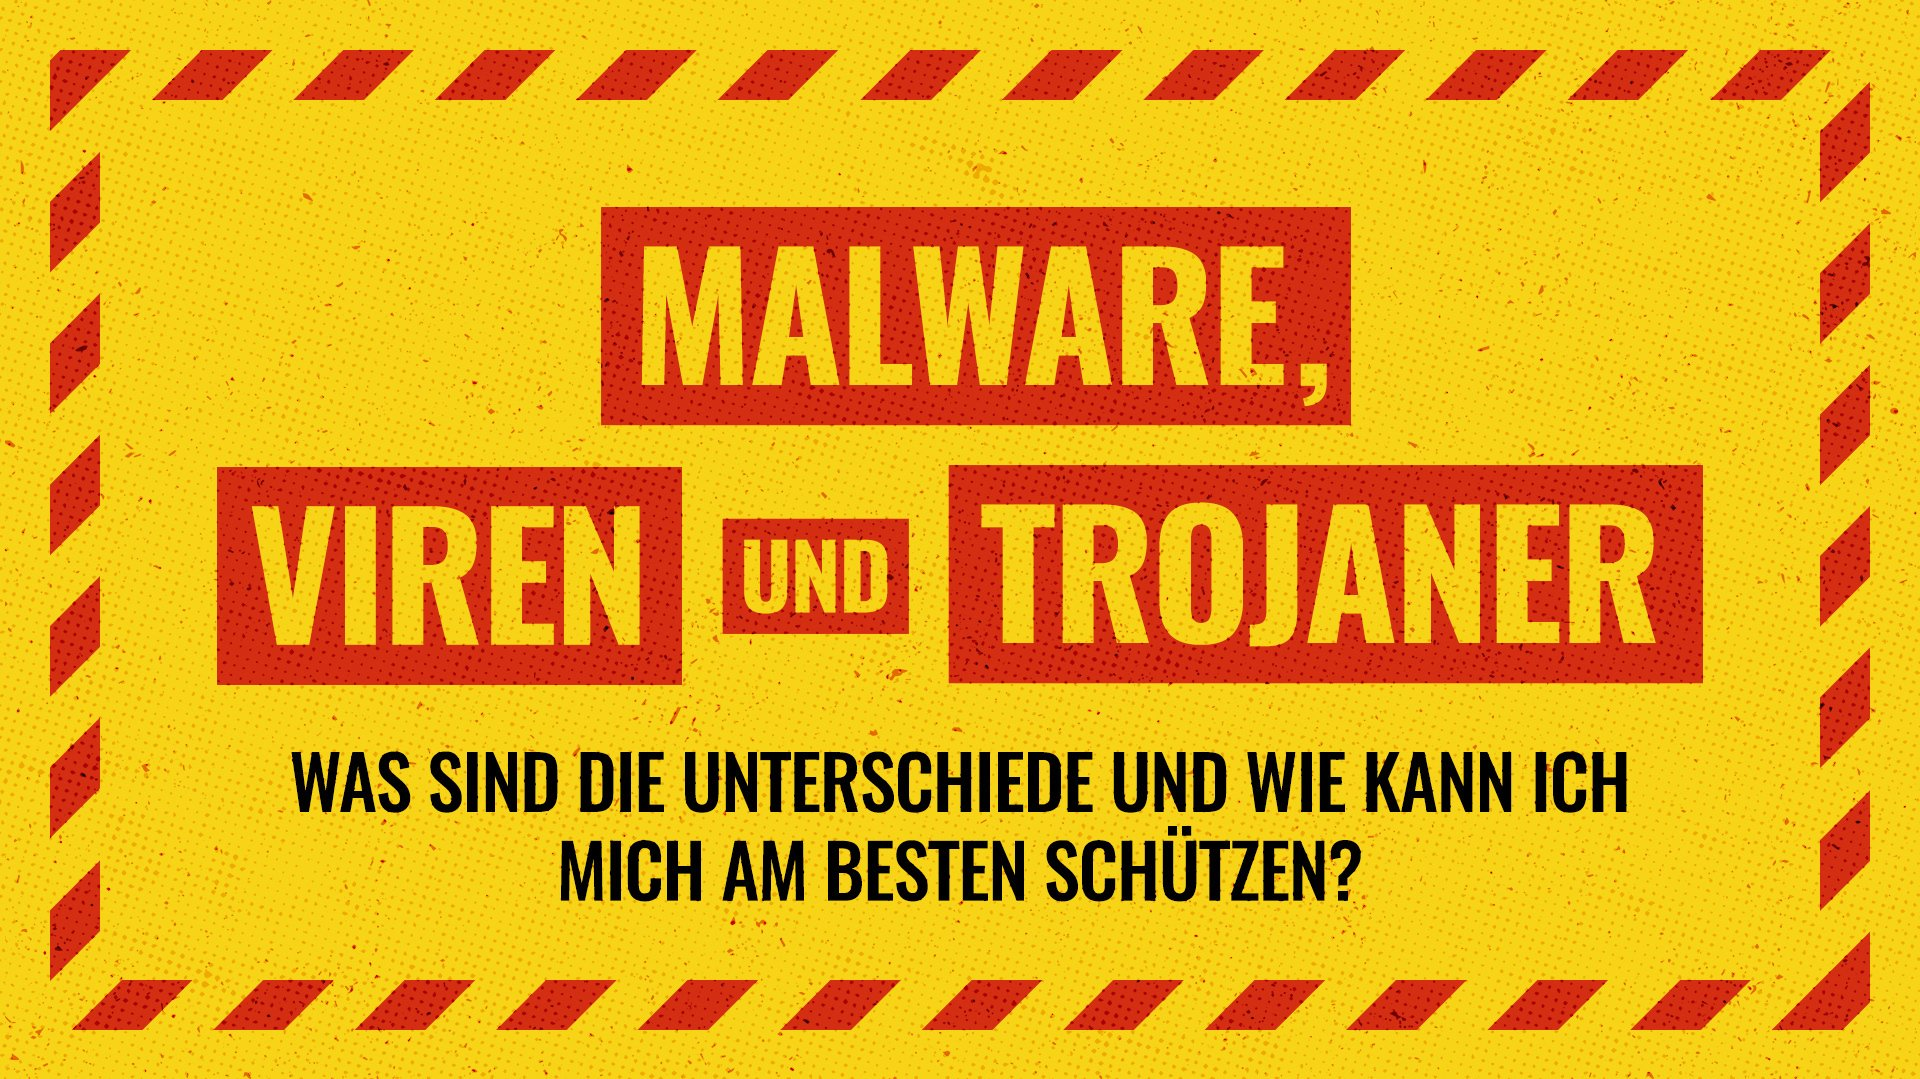 Quelle:  https://www.heise.de/download/blog/Malware-Viren-und-Trojaner-Das-Schaedlings-ABC-3356219